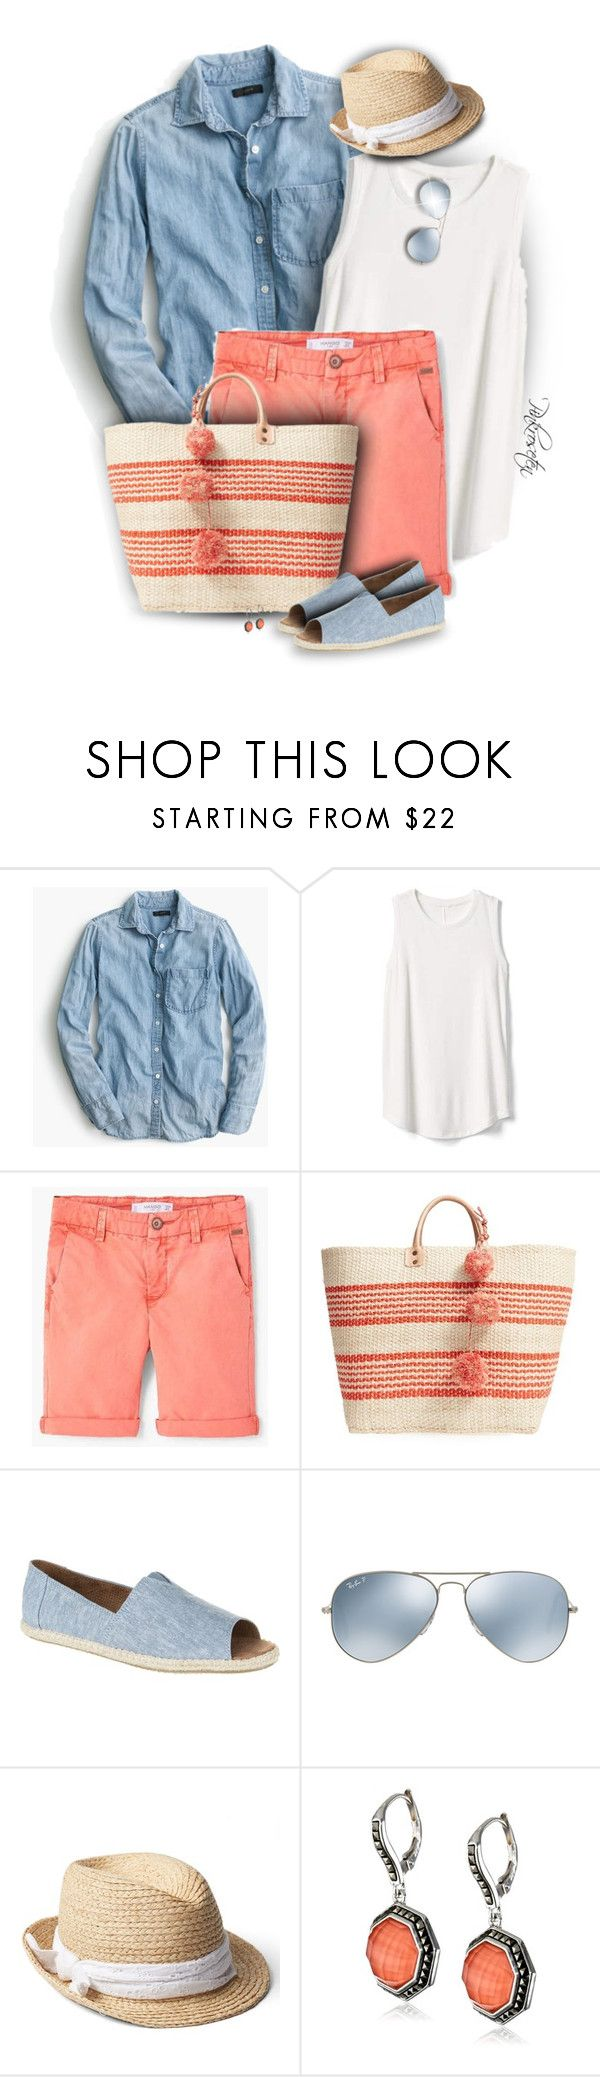 """""""Casual Spring"""" by pinkroseten ❤ liked on Polyvore featuring J.Crew, Gap, Mar y Sol, TOMS, Ray-Ban and Judith Jack"""